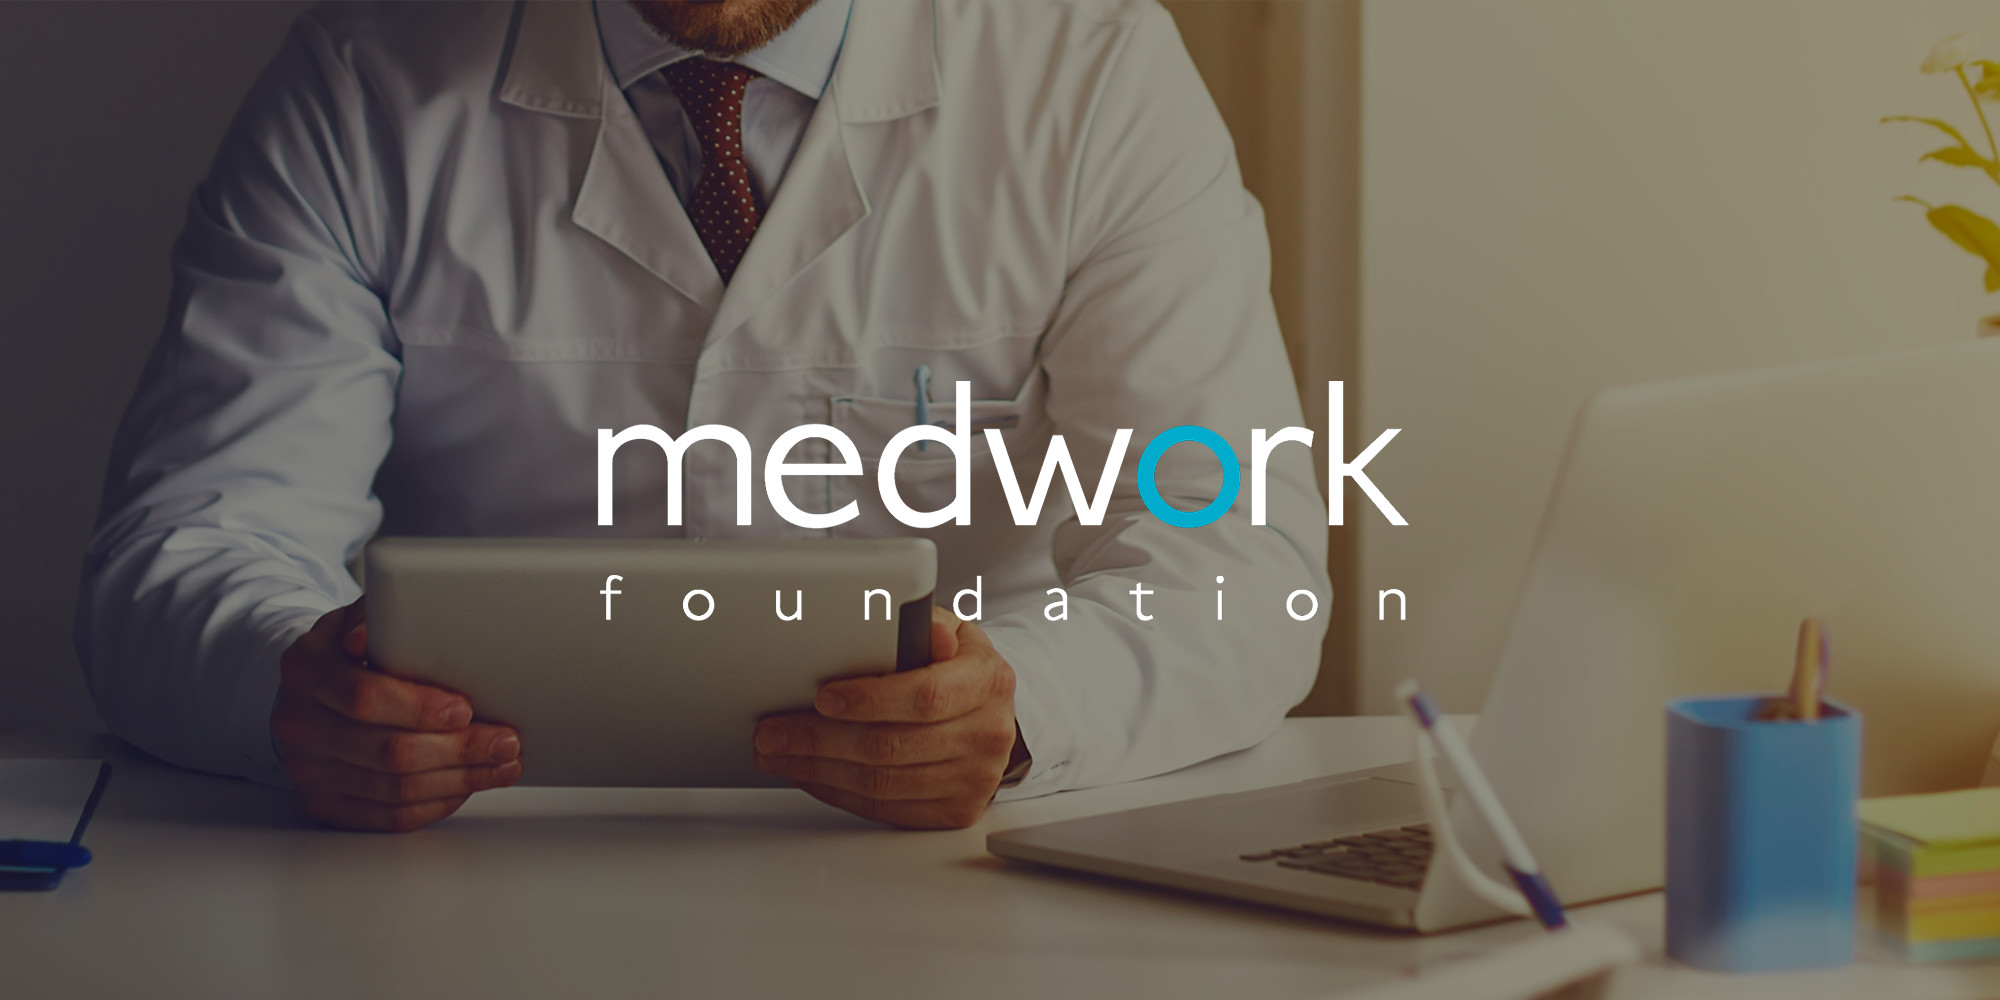 MEDWORK FOUNDATION